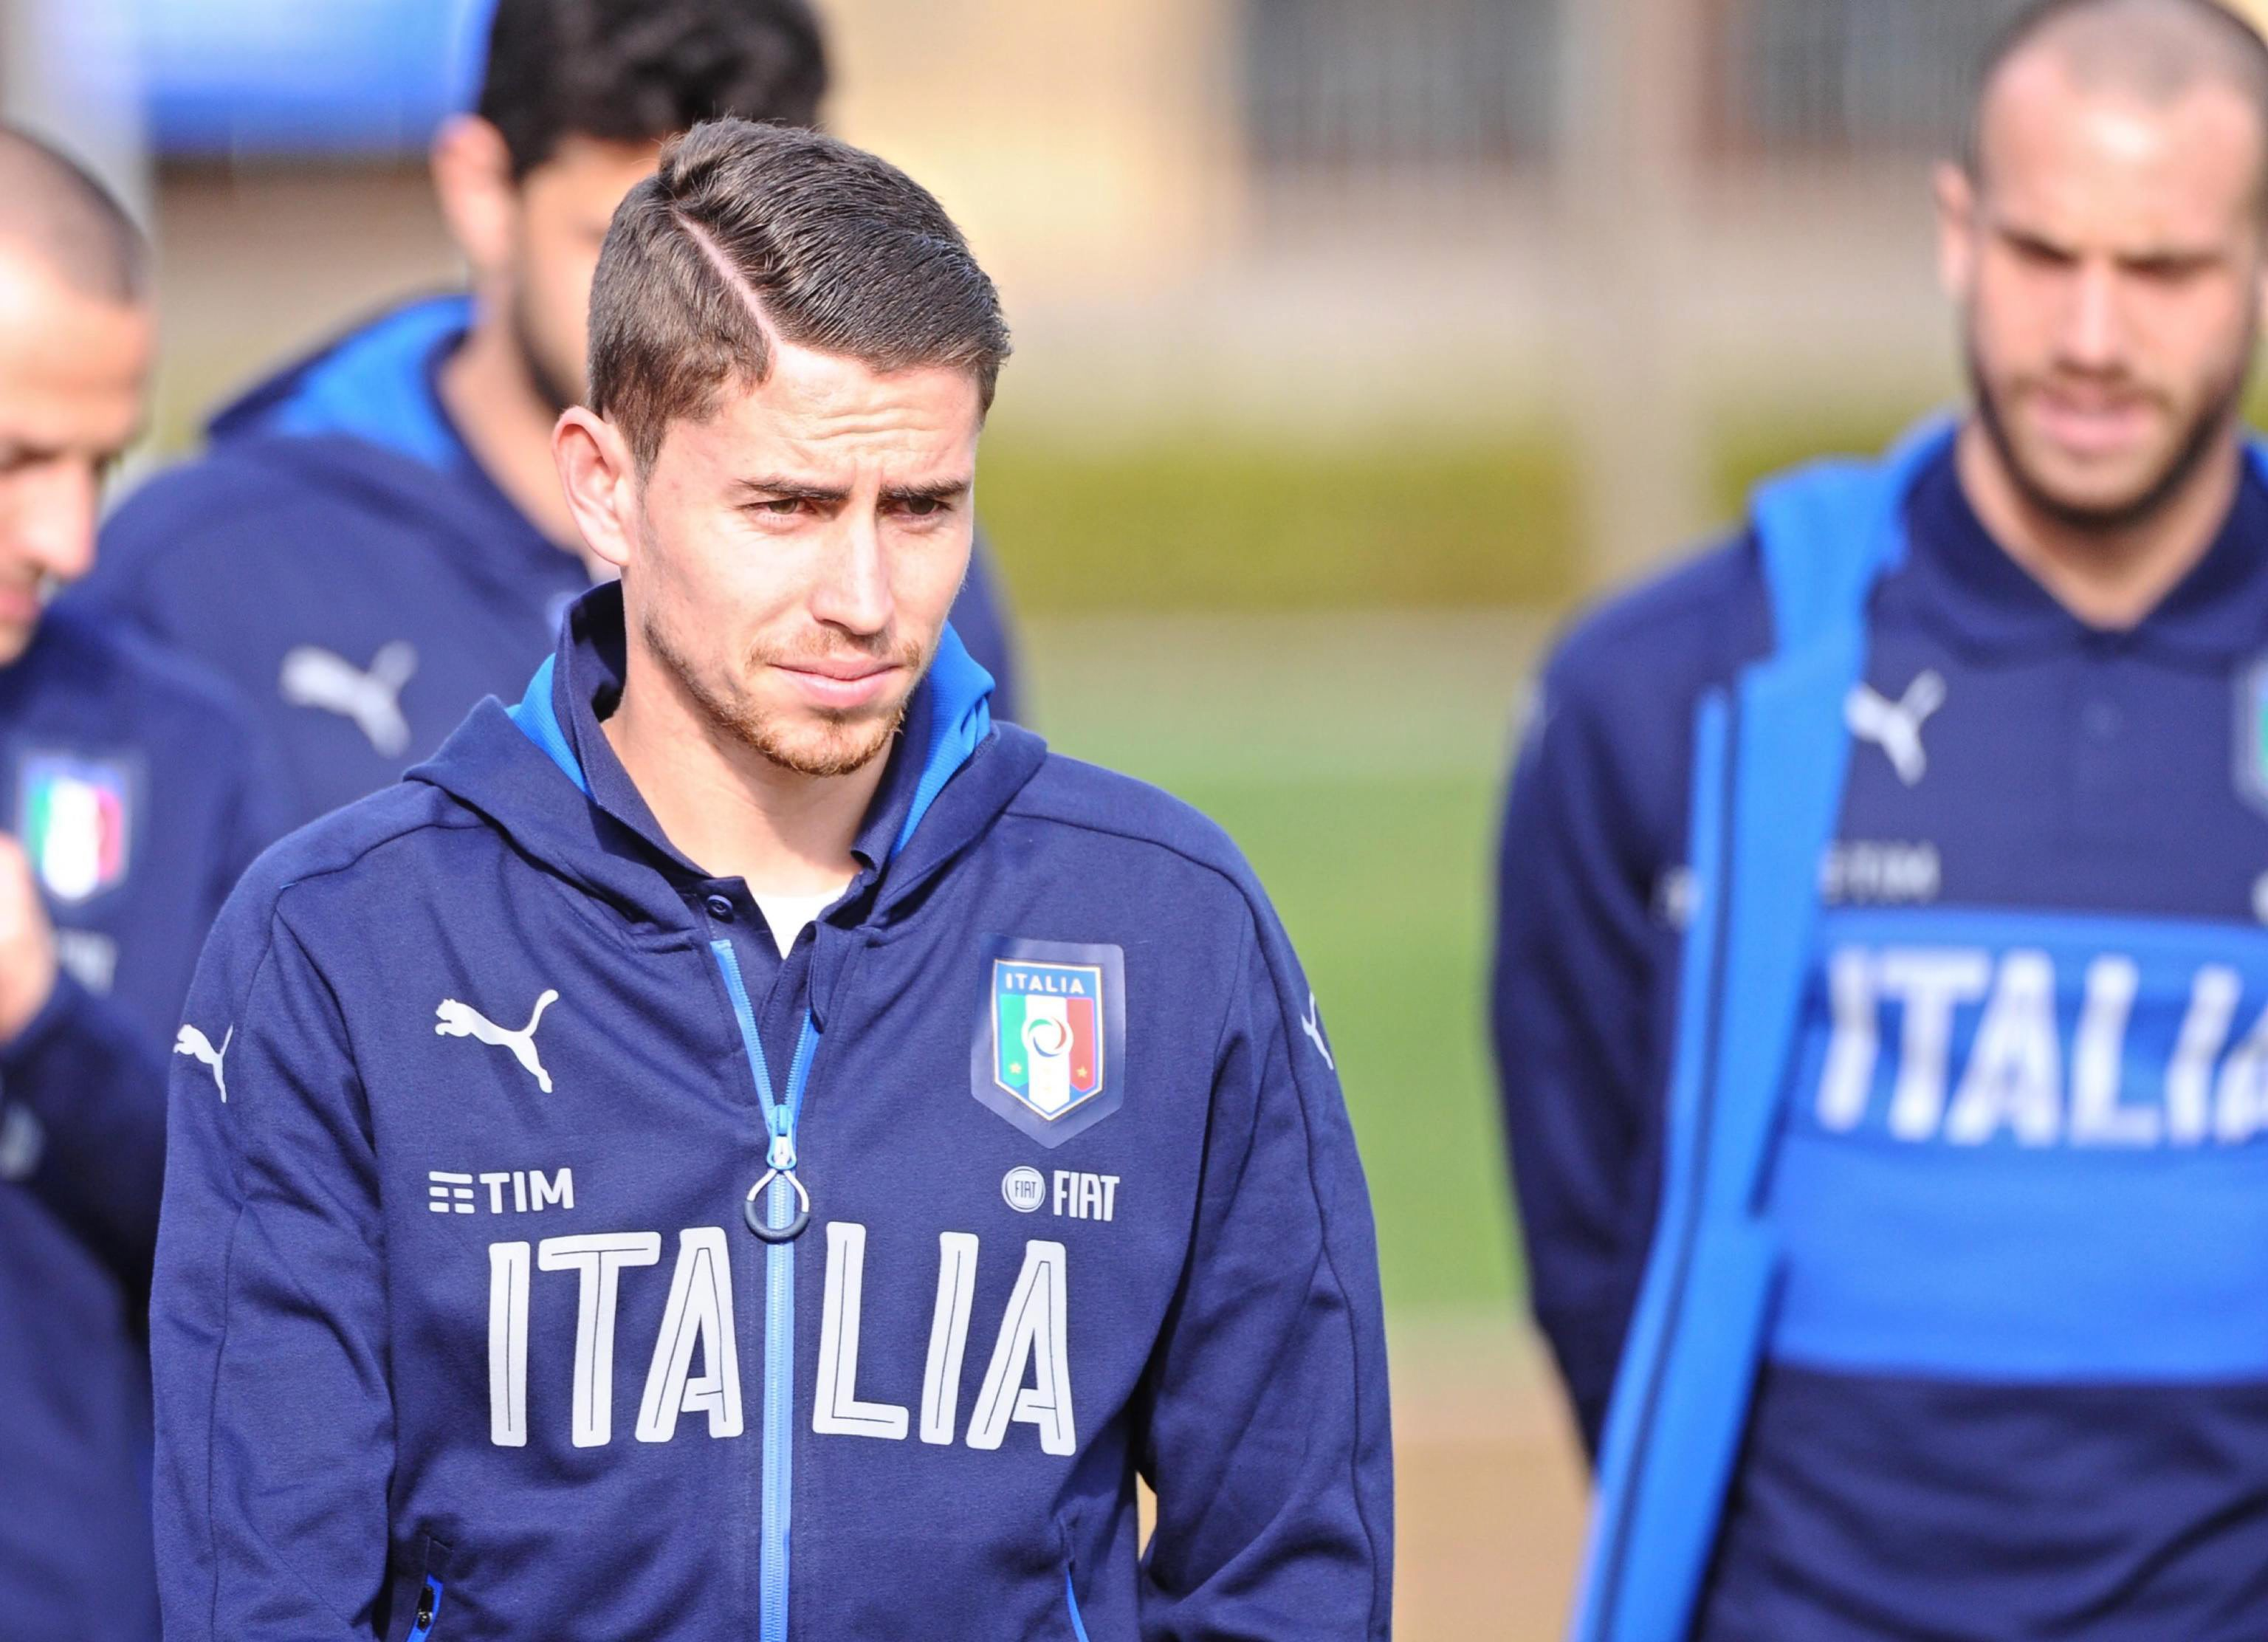 Jorginho is one of the star names missing from the Italian side. (Photo courtesy: AFP/Getty)